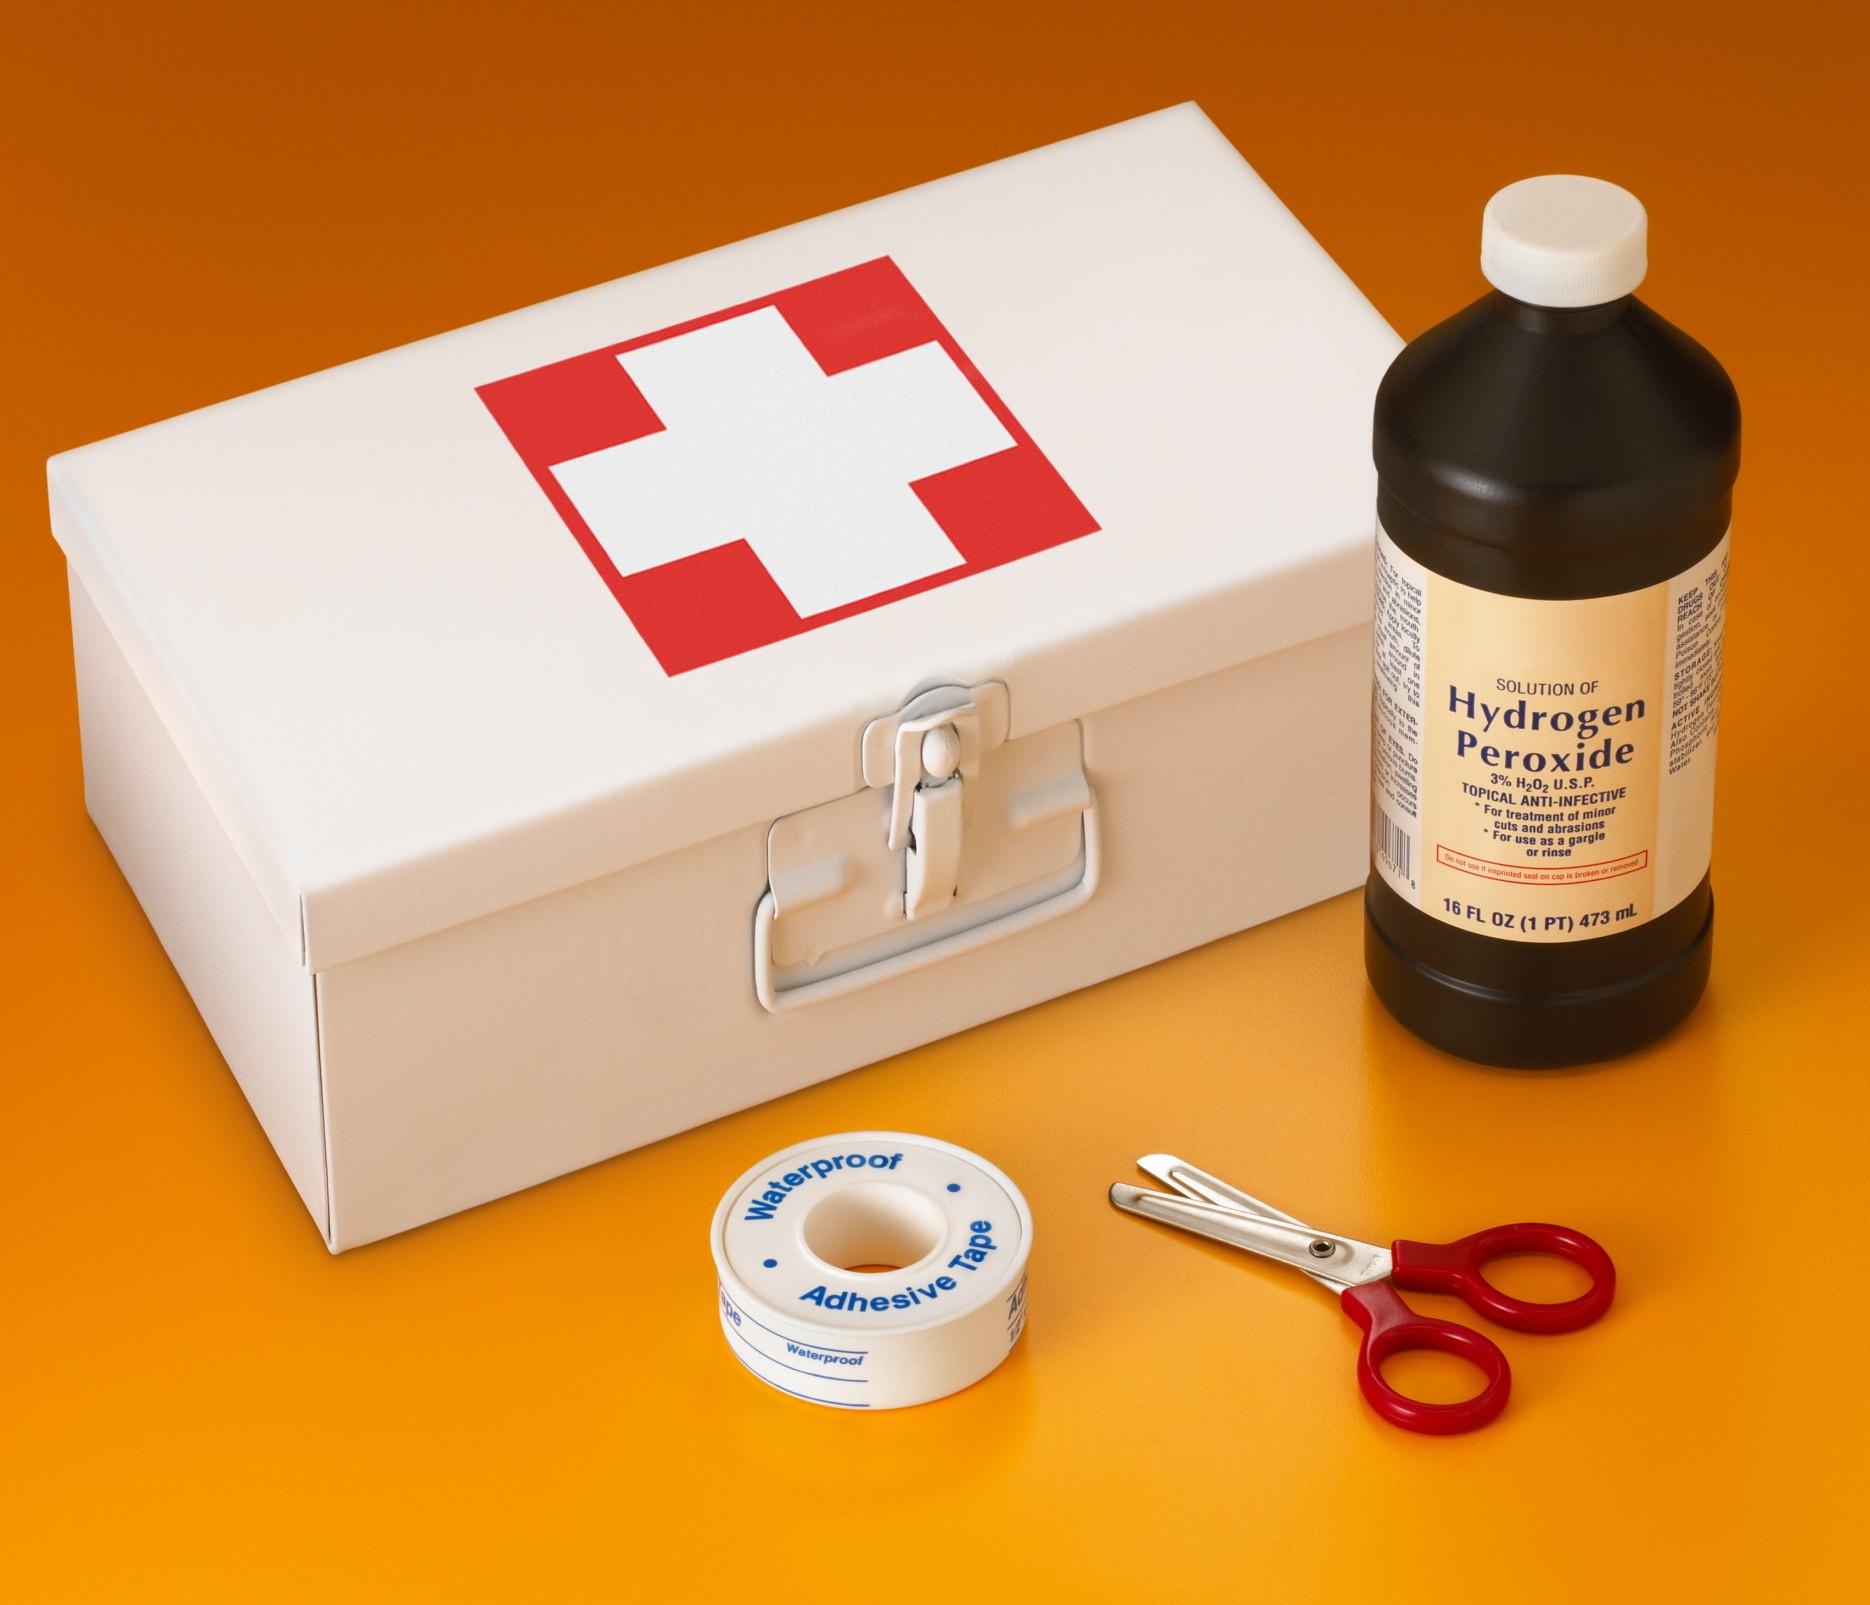 How To Use Hydrogen Peroxide To Remove Stains Ehow